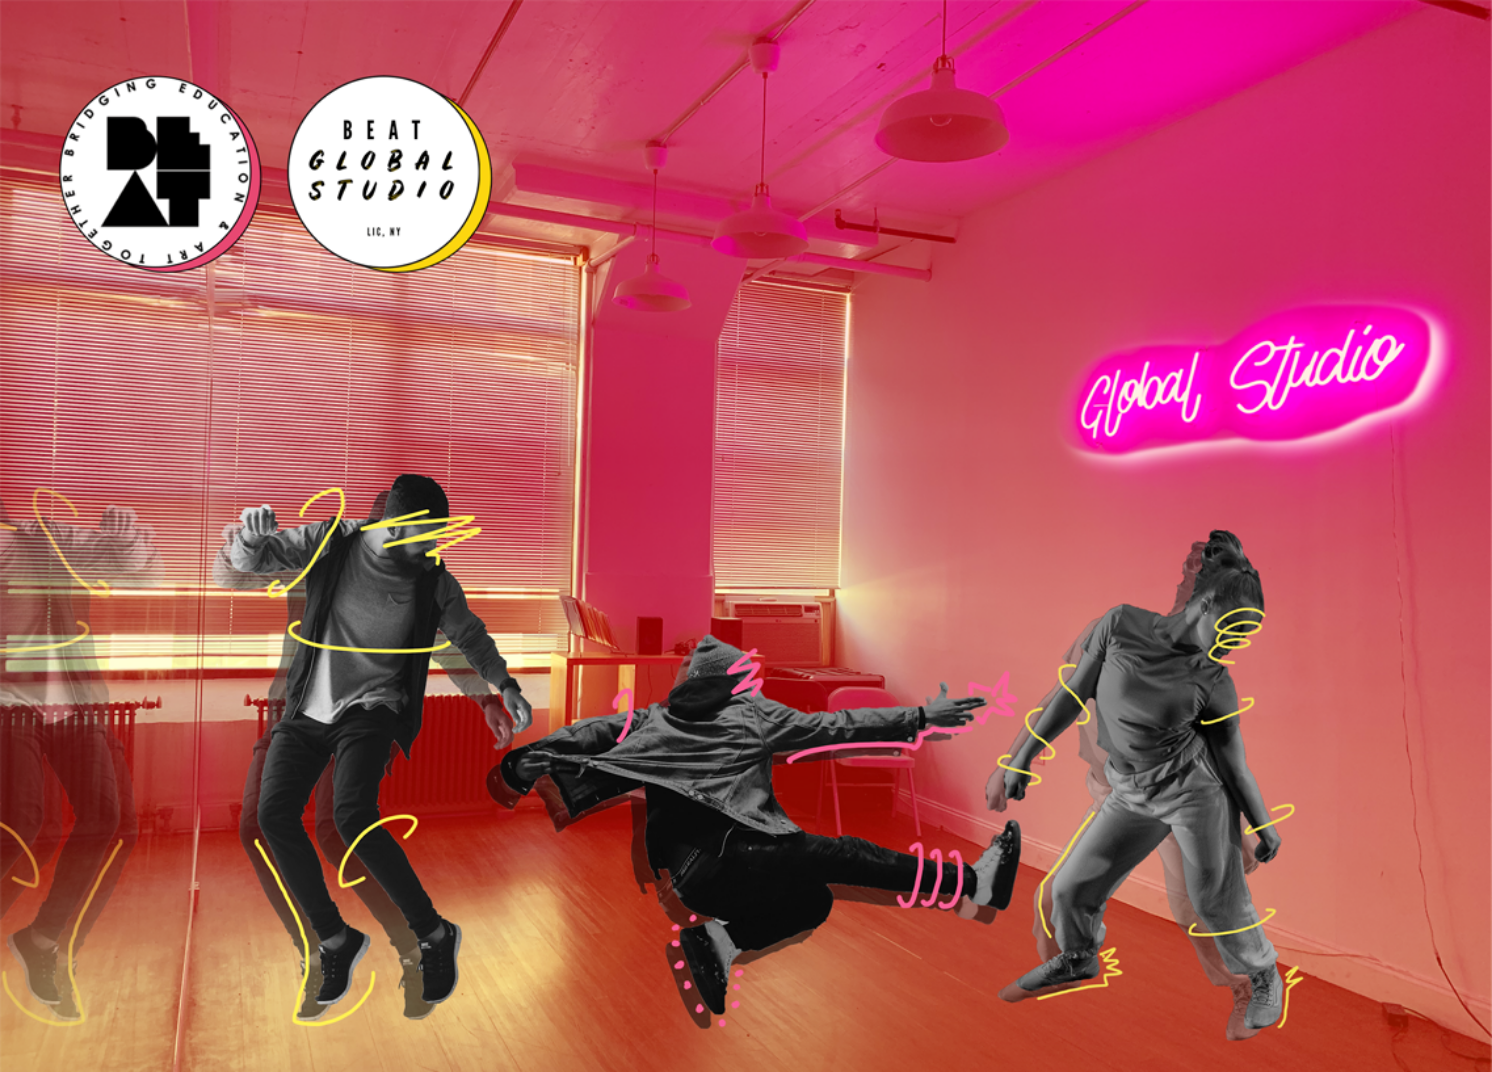 """BEAT Global Studio Graphic that features the studio as the background with a rosey tint, with black and white dancers with yellow and pink motion lines drawn around them. BEAT's logos are in top left corner and there is a glowing pink neon sign that says """"Global Studio"""" on the wall."""